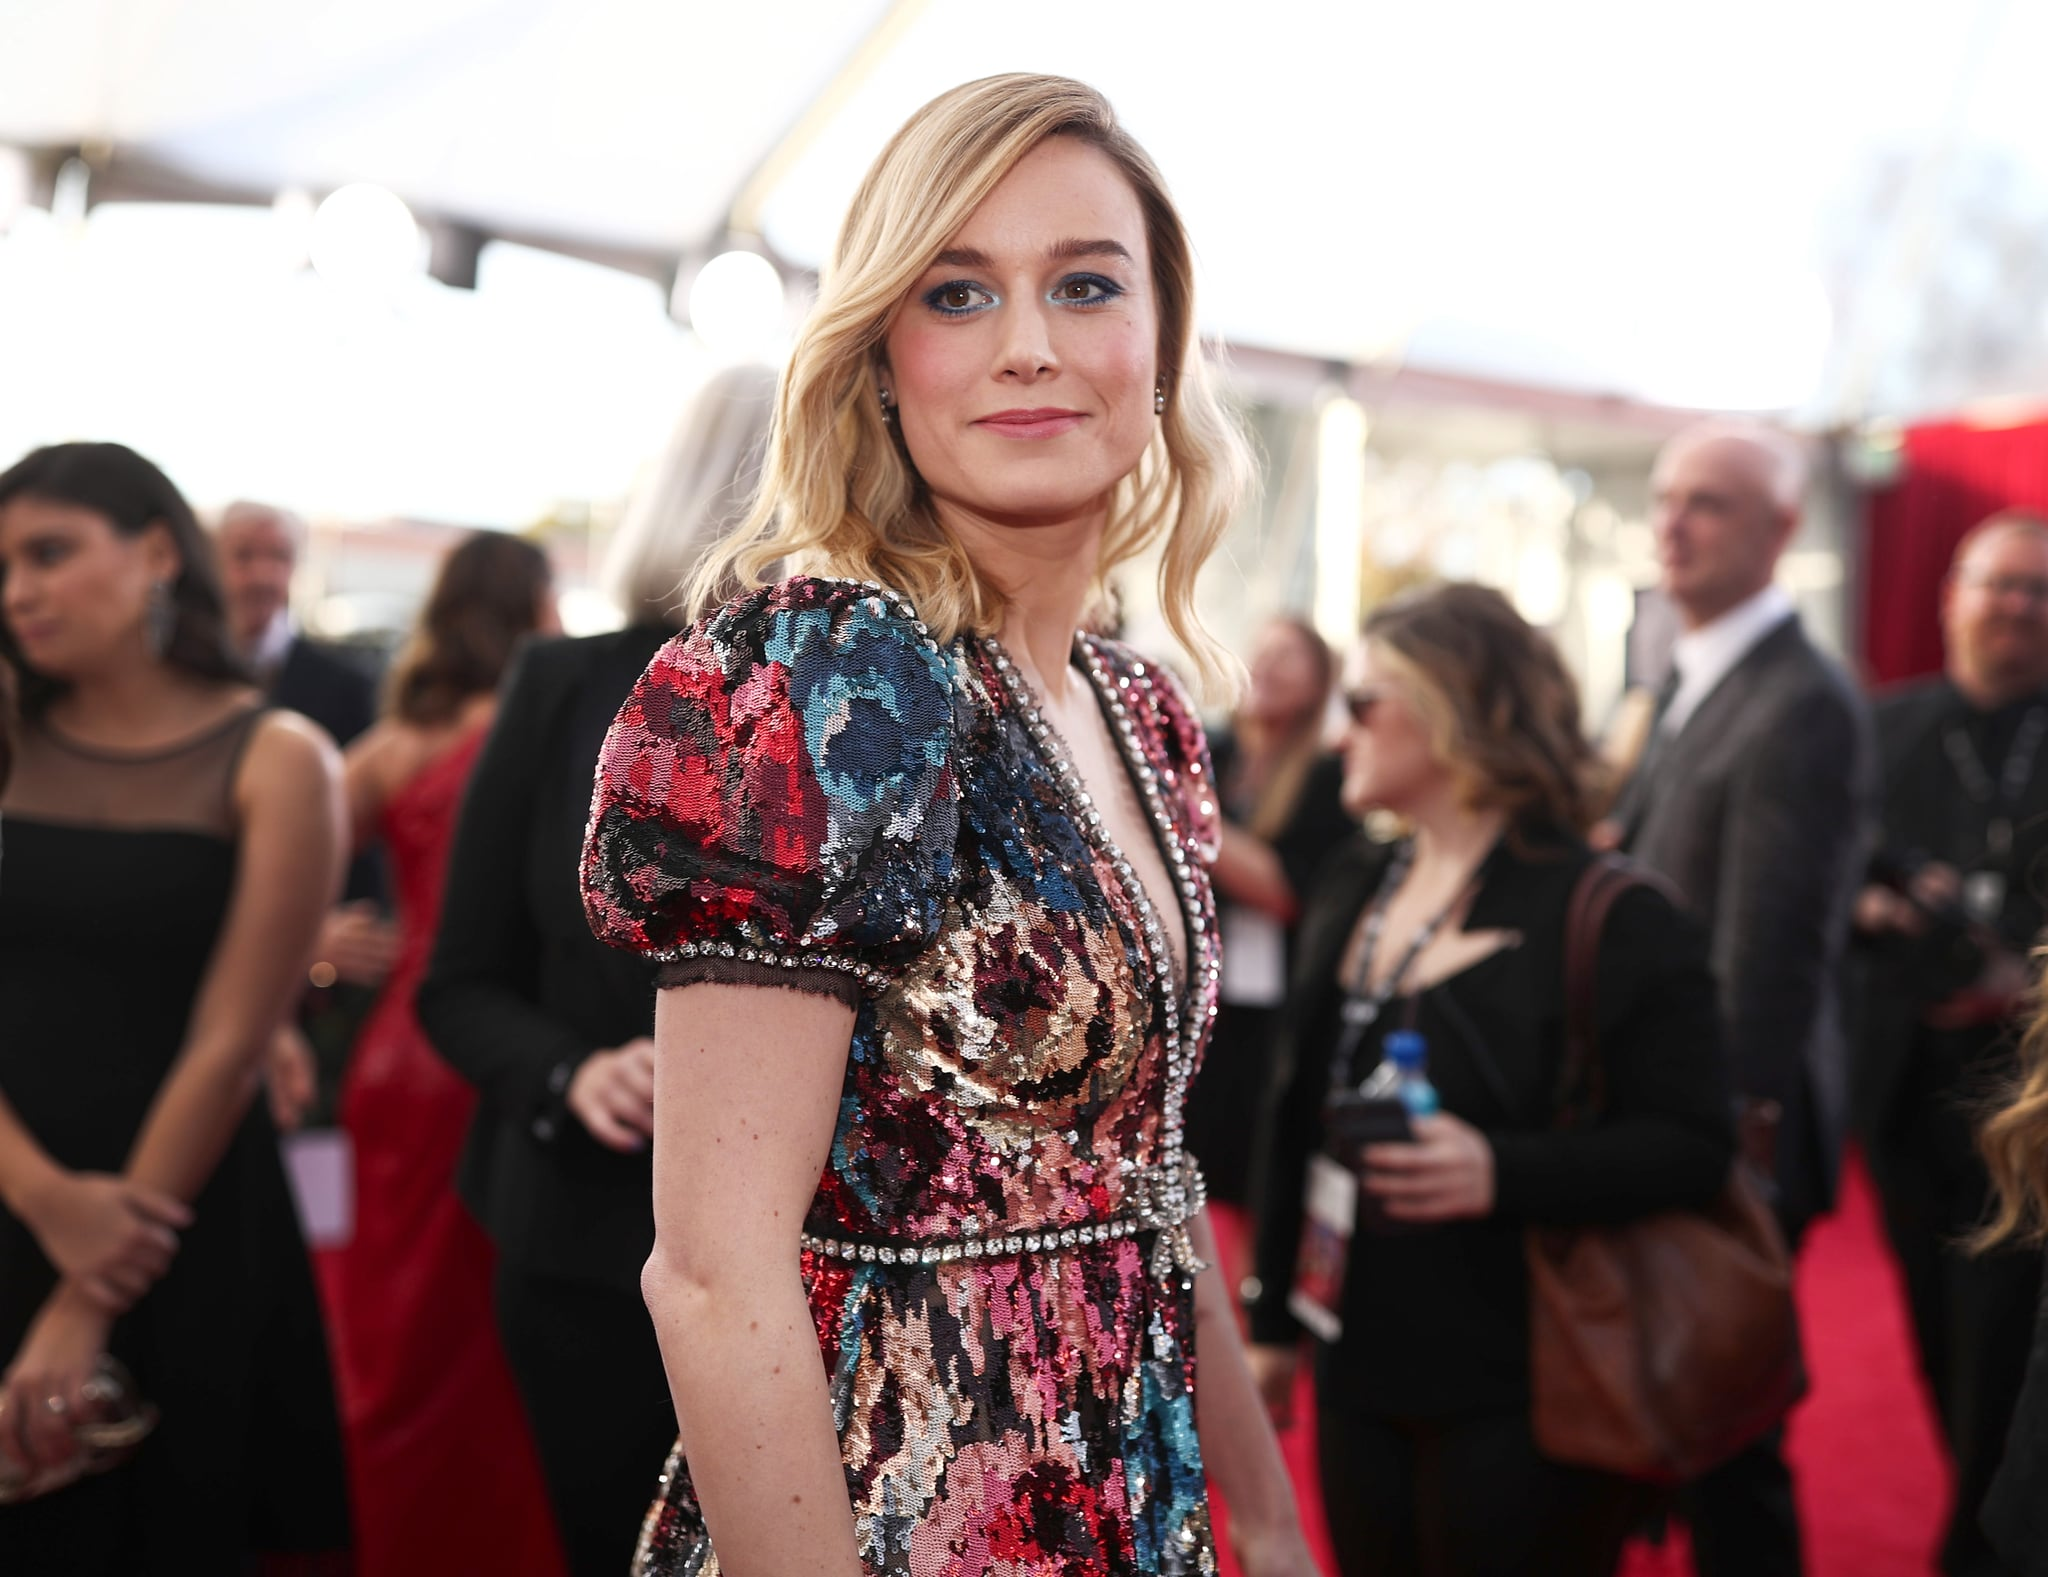 LOS ANGELES, CA - JANUARY 21:  Actor Brie Larson attends the 24th Annual Screen Actors Guild Awards at The Shrine Auditorium on January 21, 2018 in Los Angeles, California. 27522_010  (Photo by Christopher Polk/Getty Images for Turner)